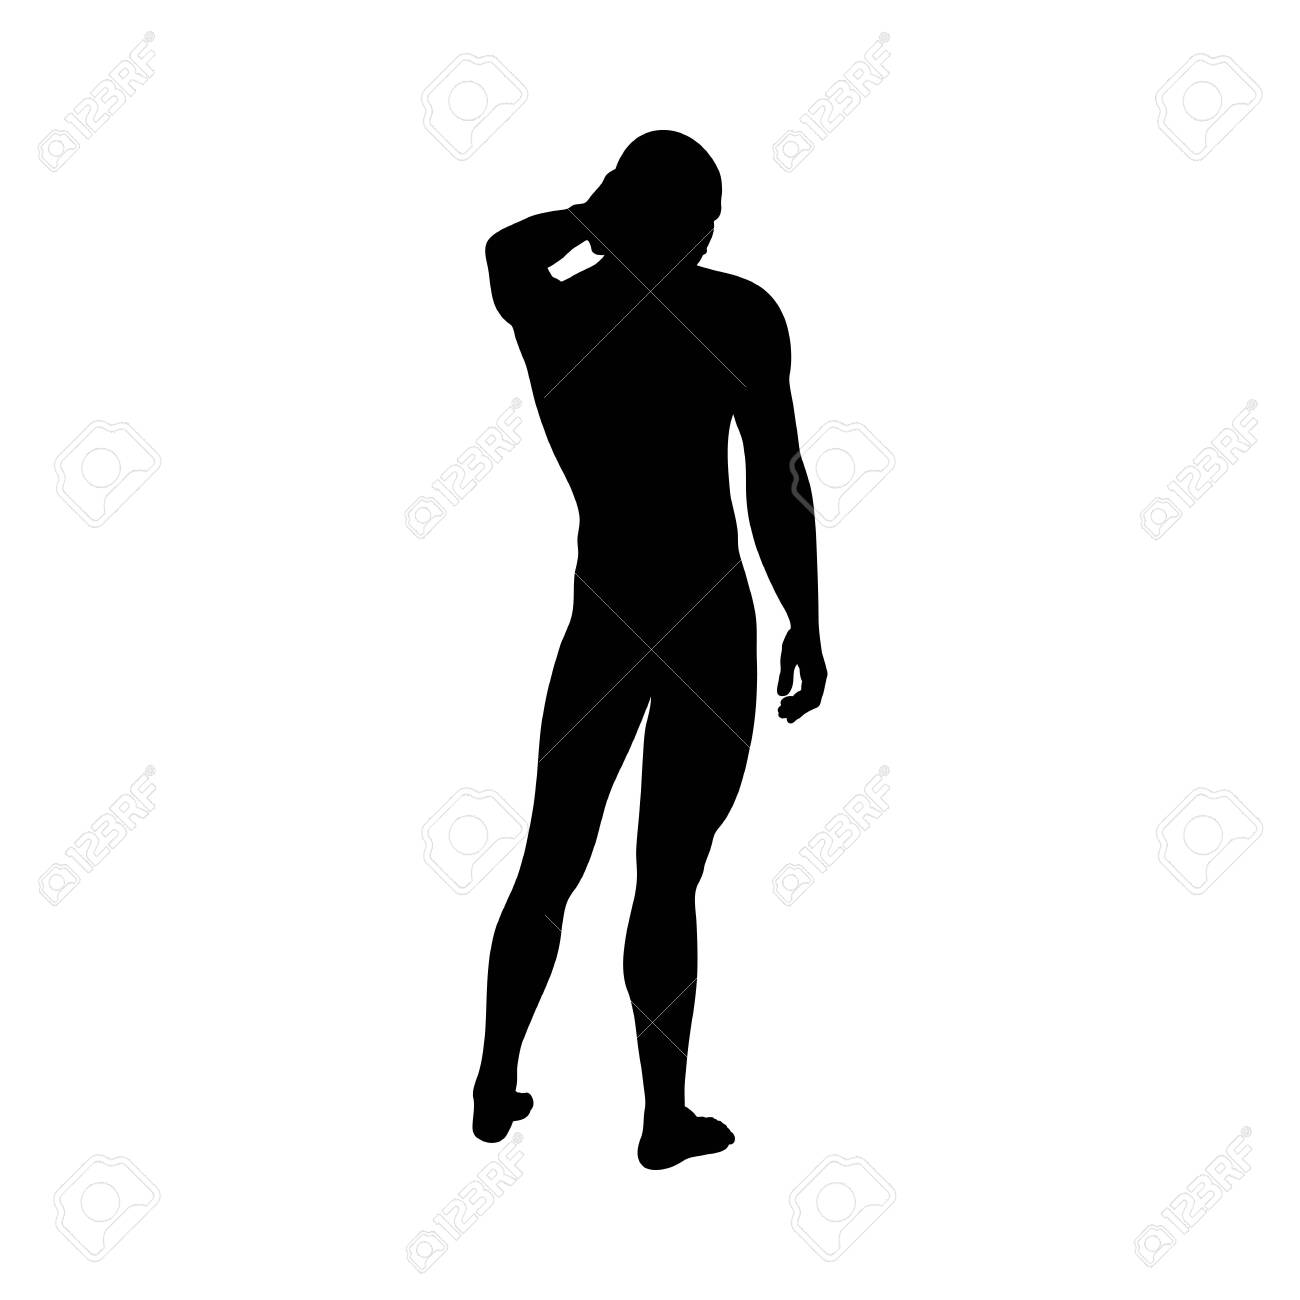 Standing Pose Man Silhouette. Very smooth and detailed. Vector illustration. - 128521090